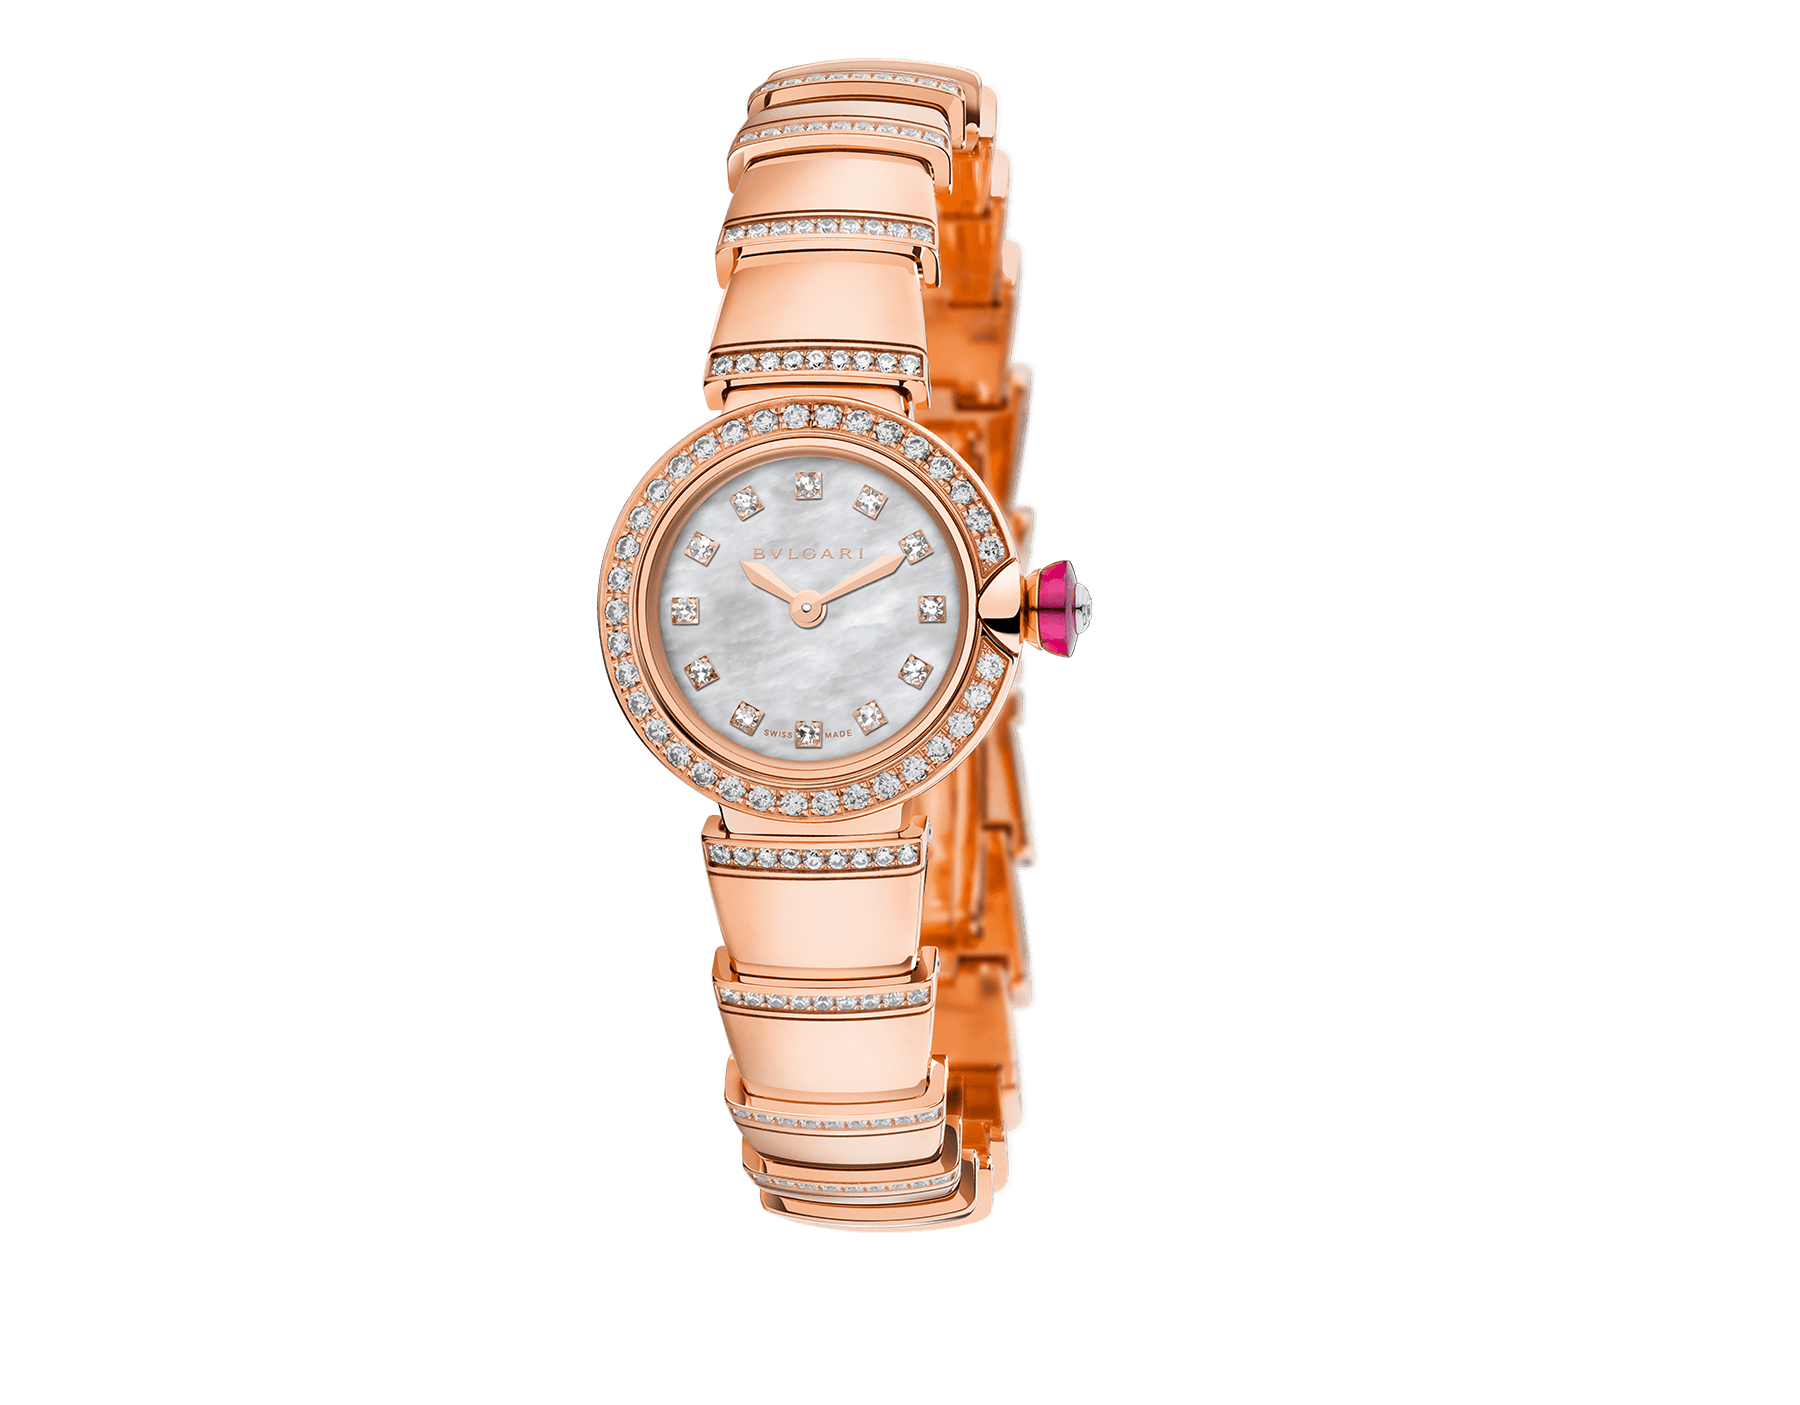 Piccola Lvcea watch in 18kt rose gold case and bracelet, both set with brilliant-cut diamonds, white mother-of-pearl dial and diamond indexes. 102503 image 1